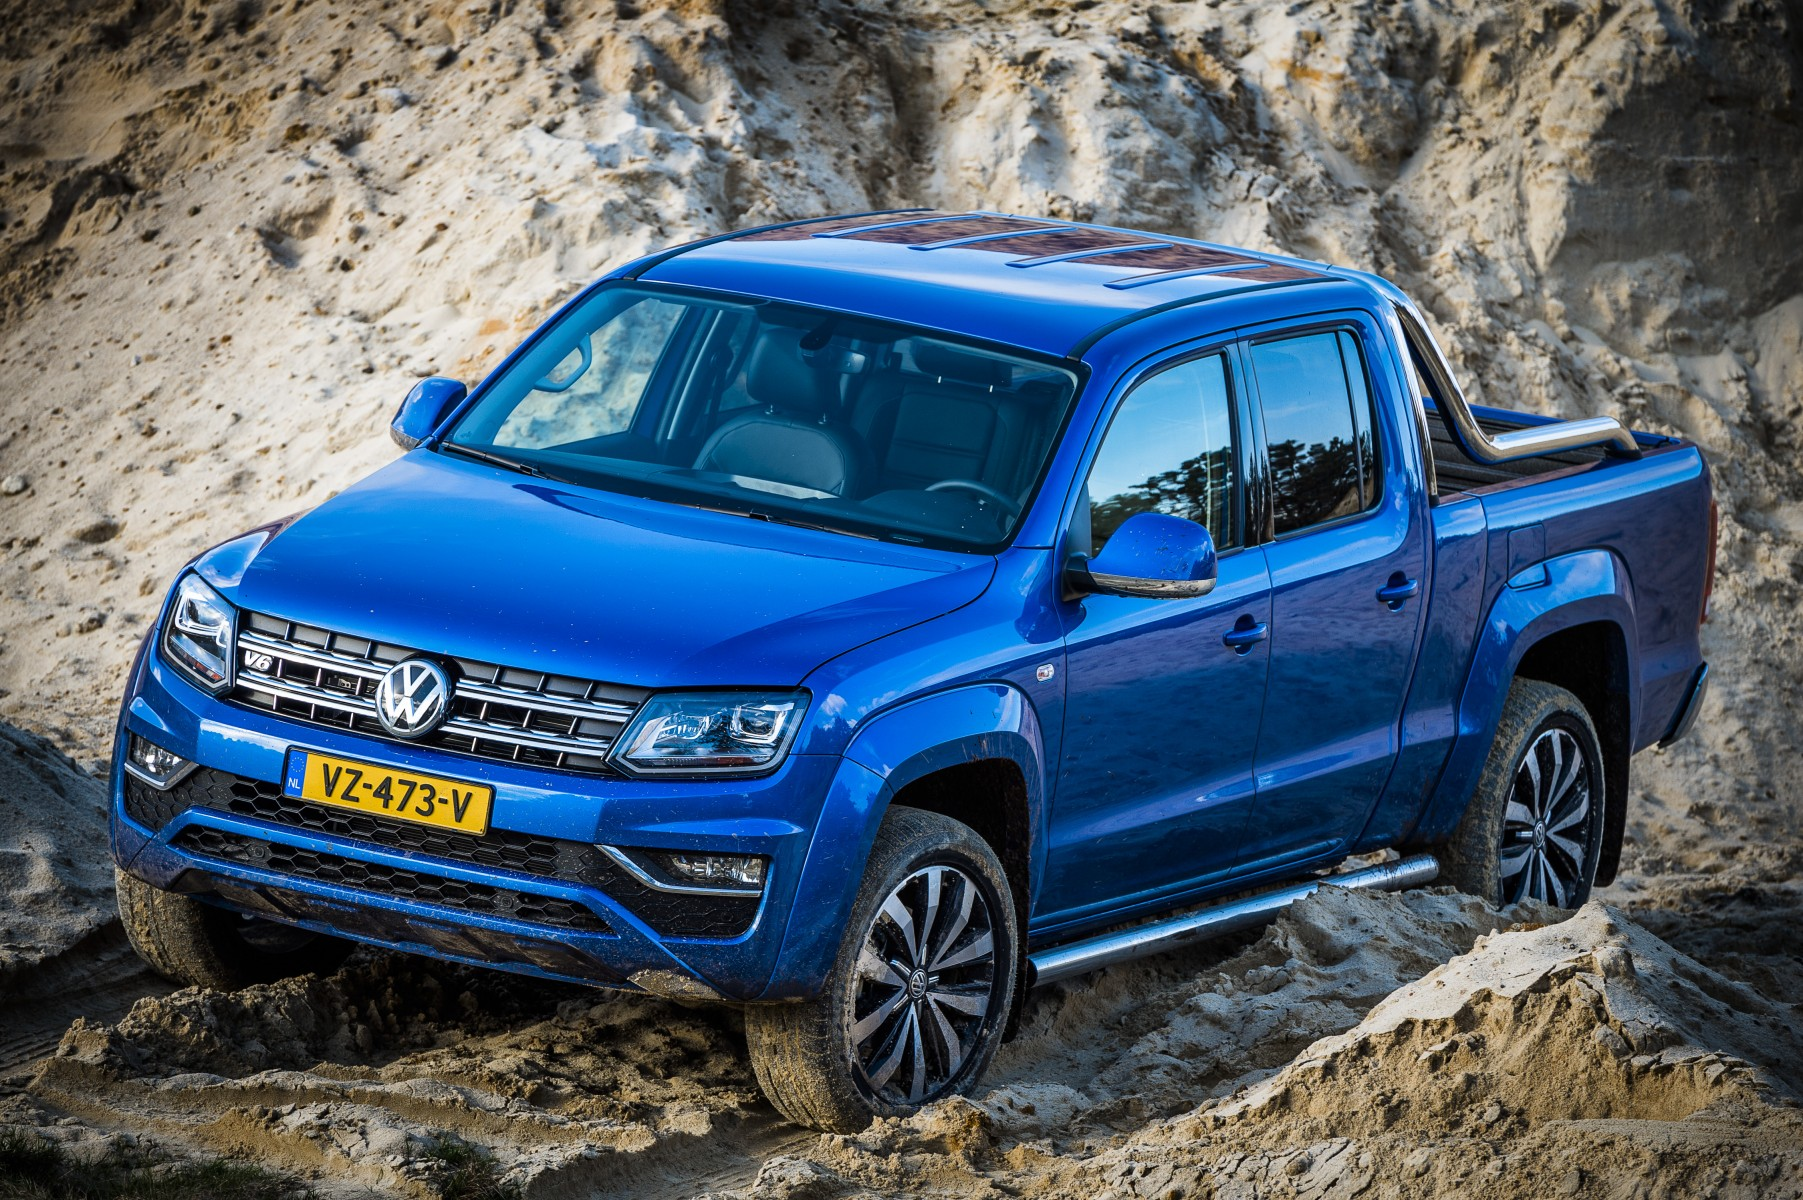 nieuwe volkswagen amarok 3 0 v6 tdi 4wd magazine. Black Bedroom Furniture Sets. Home Design Ideas